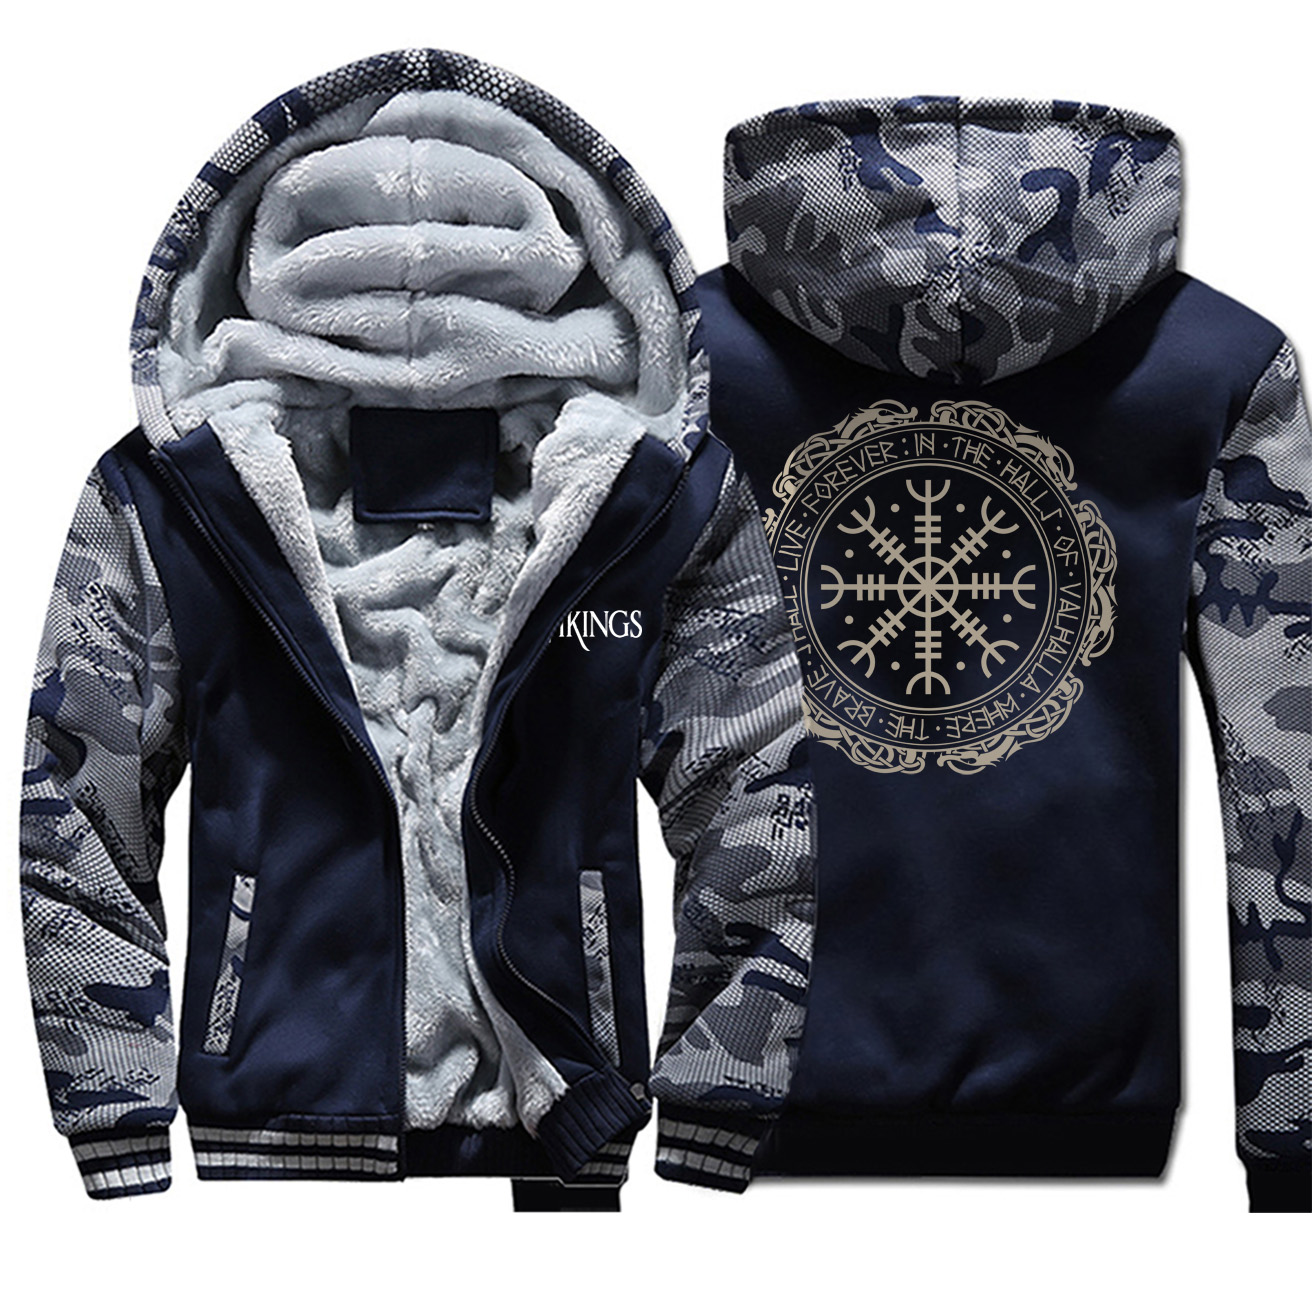 2019 Winter Thick Mens Hoodies Viking Printing Male Jacket Hip Hop Brand Outwear Hot Sale Camouflage Sleeve Men's Jacket Casual